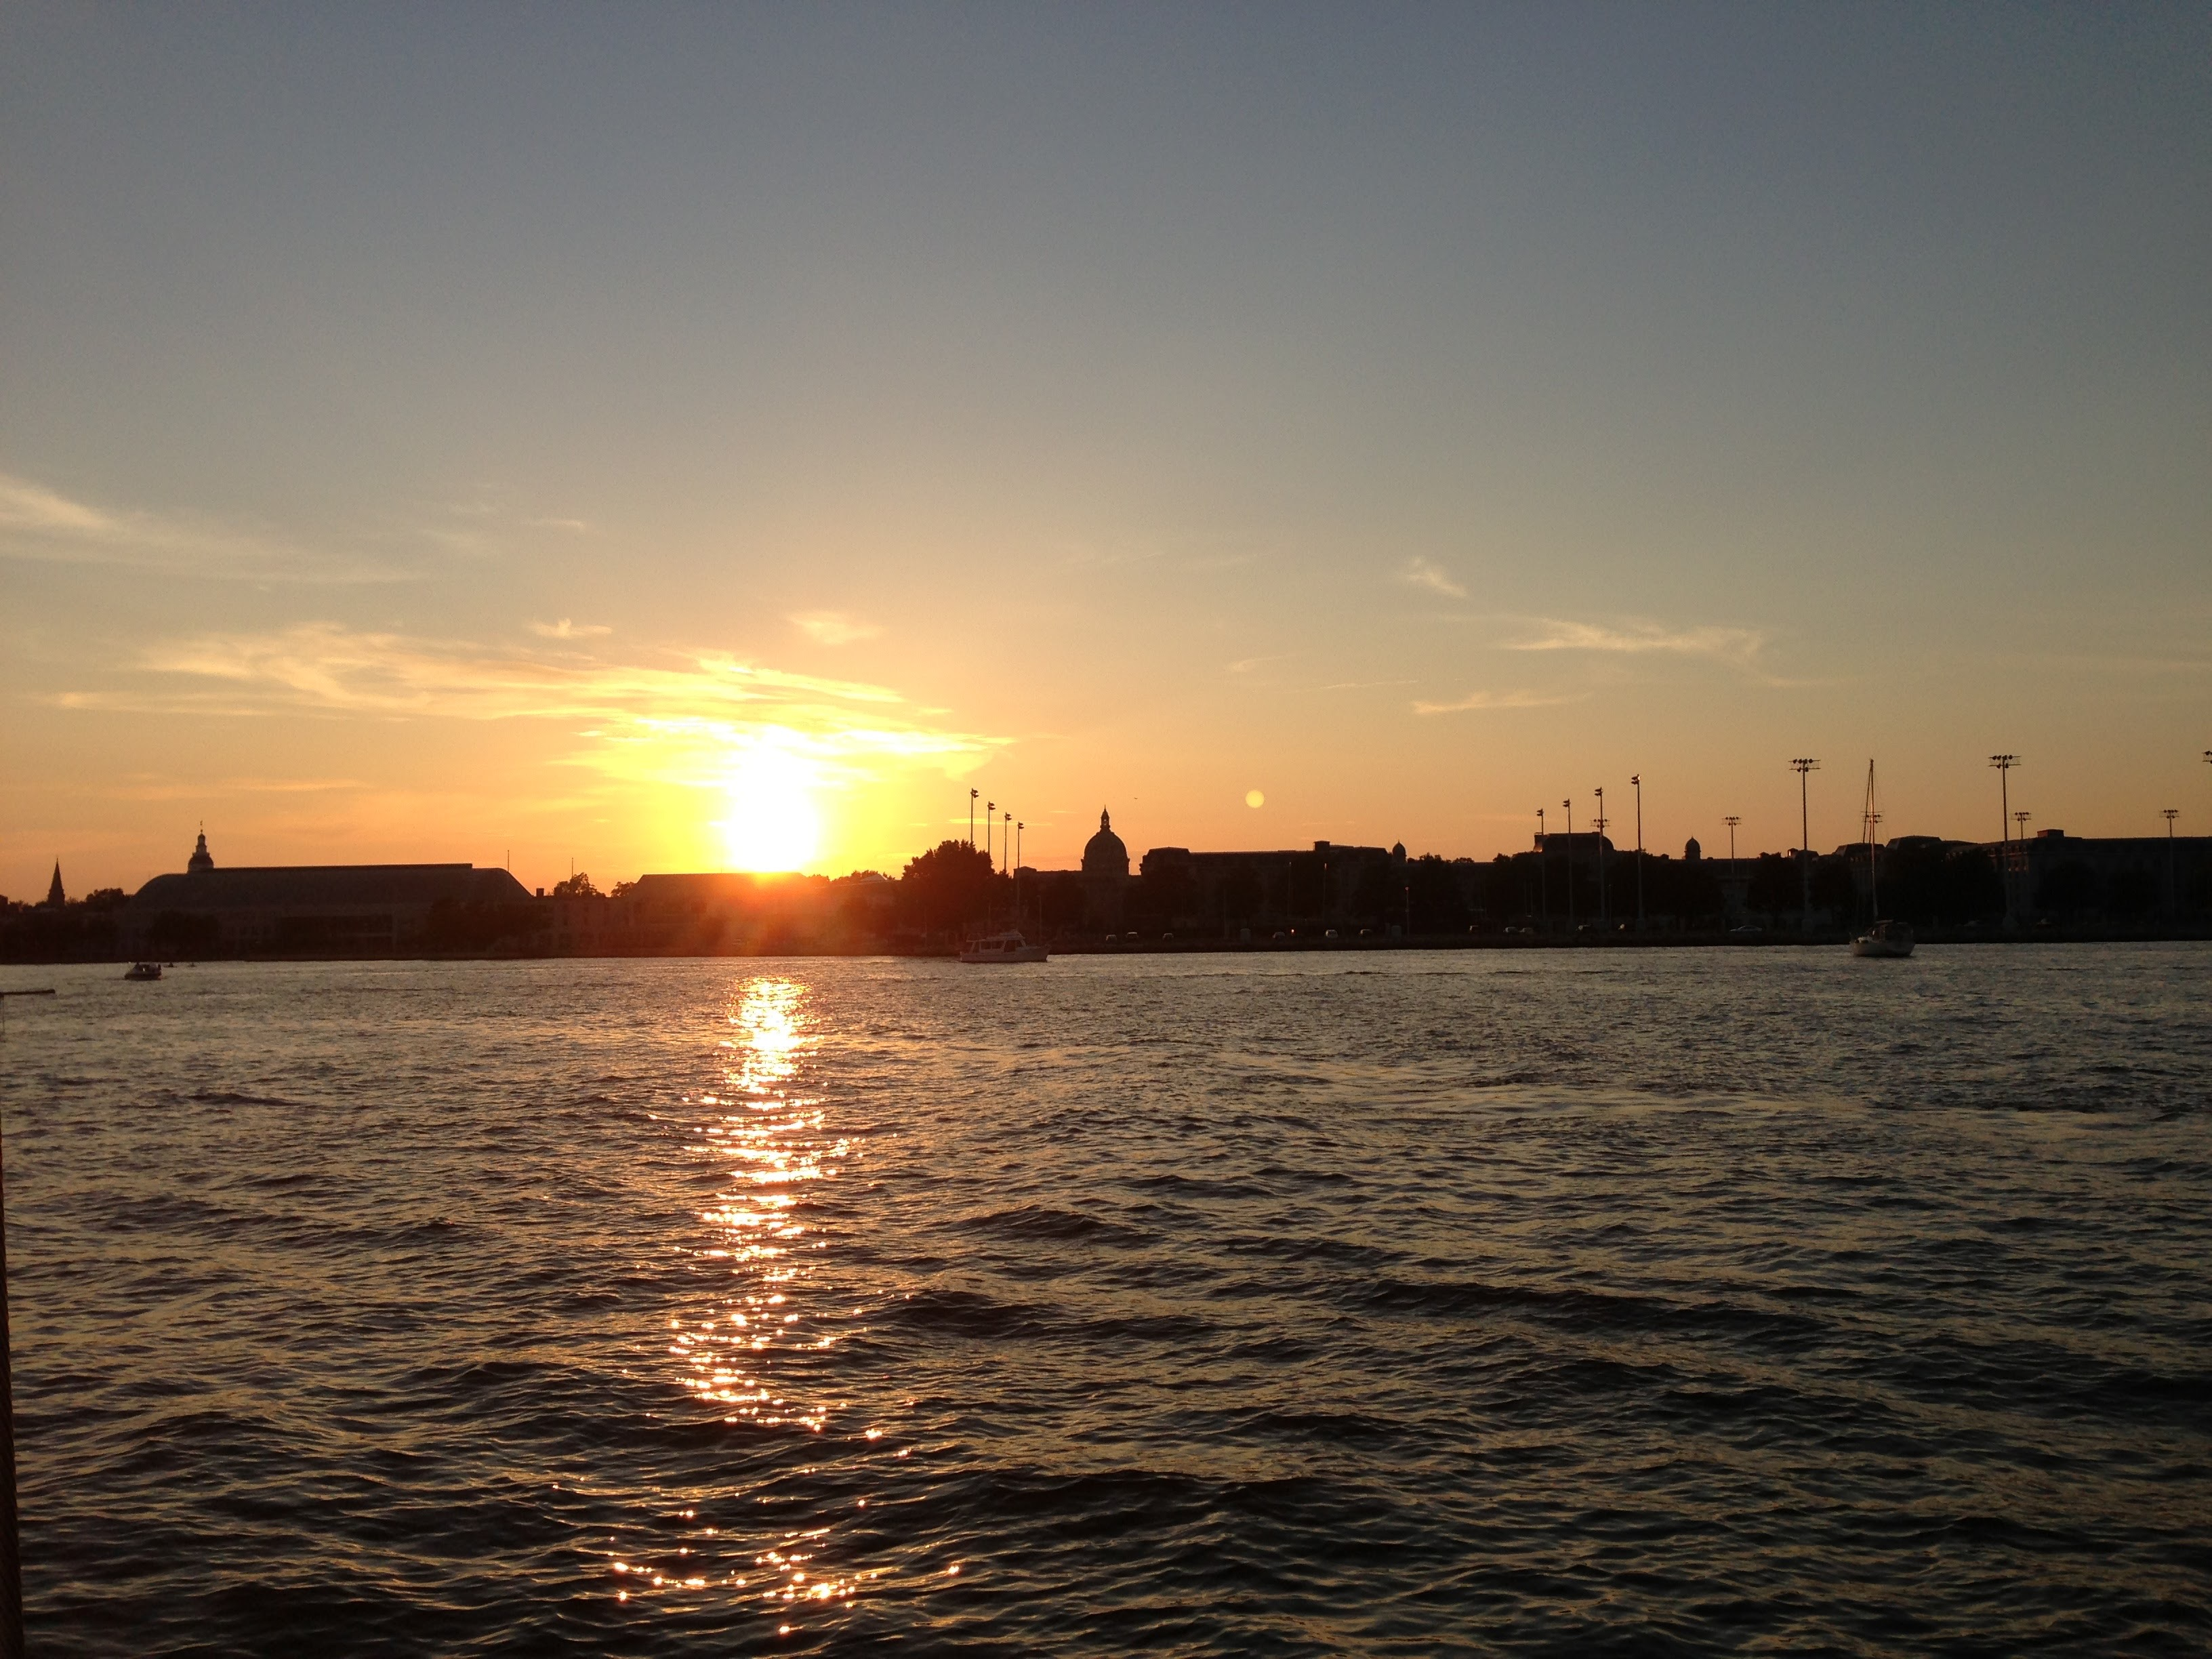 Sunset over the USNA Academy taken from the water